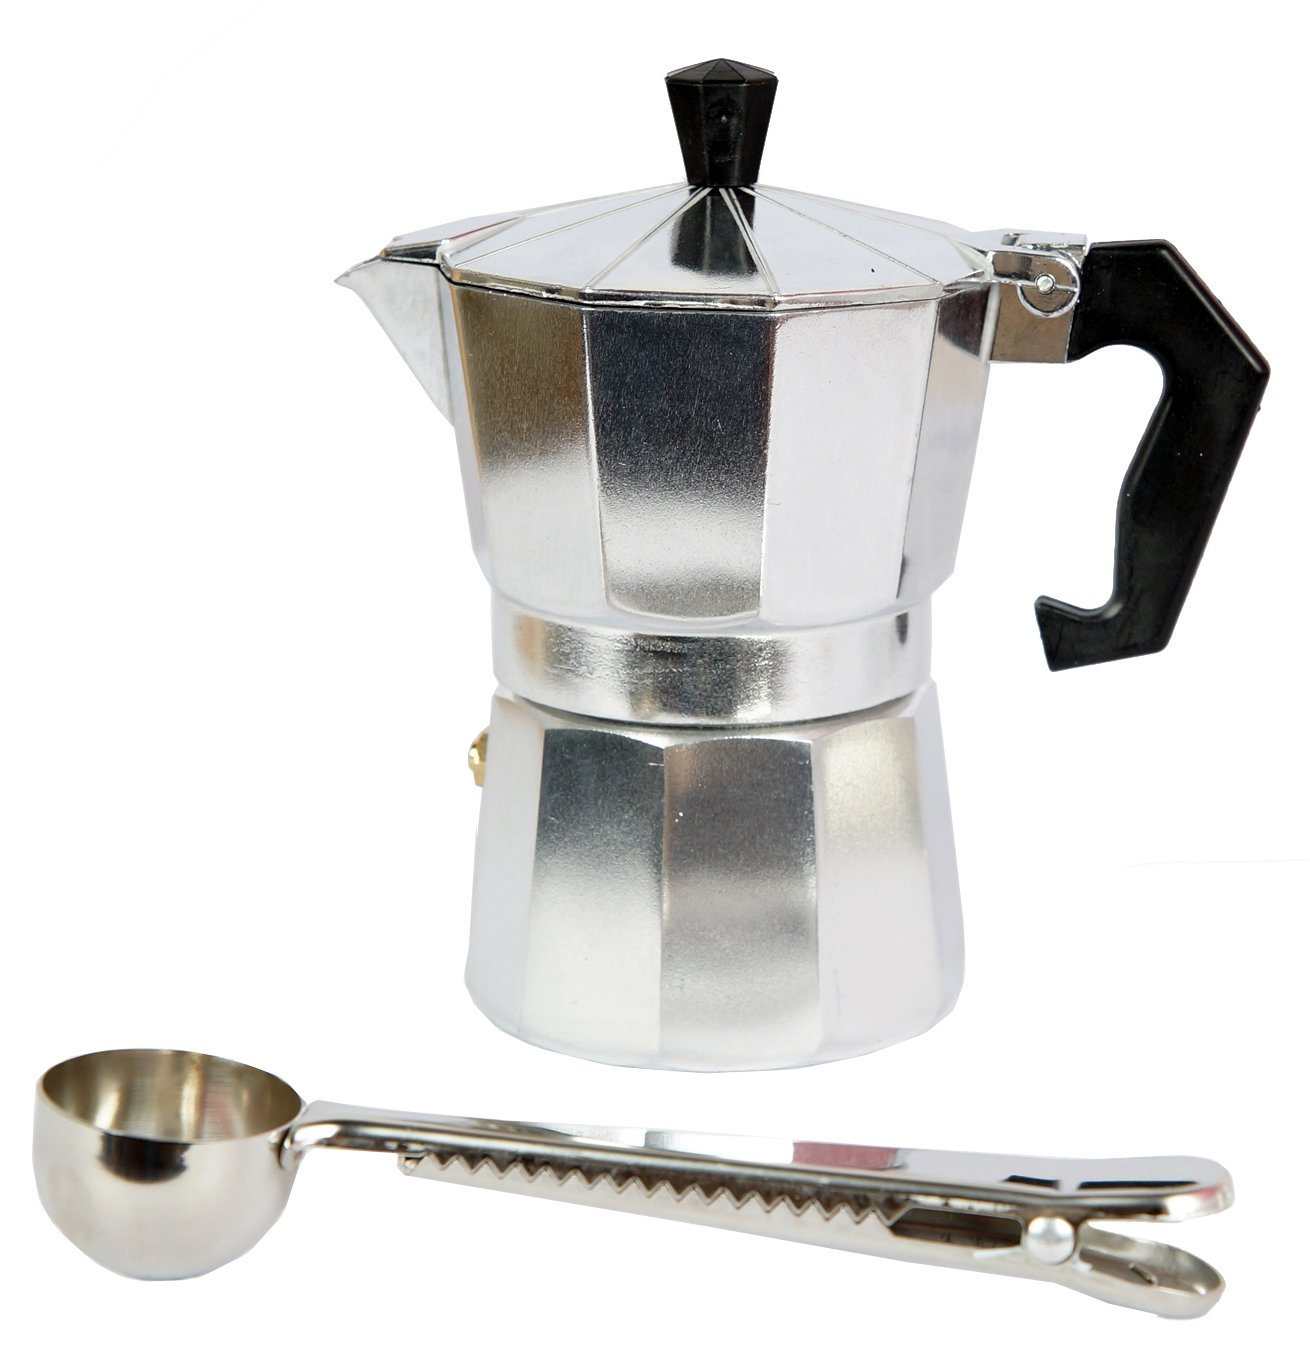 Mykumi Moka Pot 3 Cup Espresso Maker, Classic Aluminum for Gas, Electric and Ceramic Stovetop with Coffee Spoon (3 Cup)